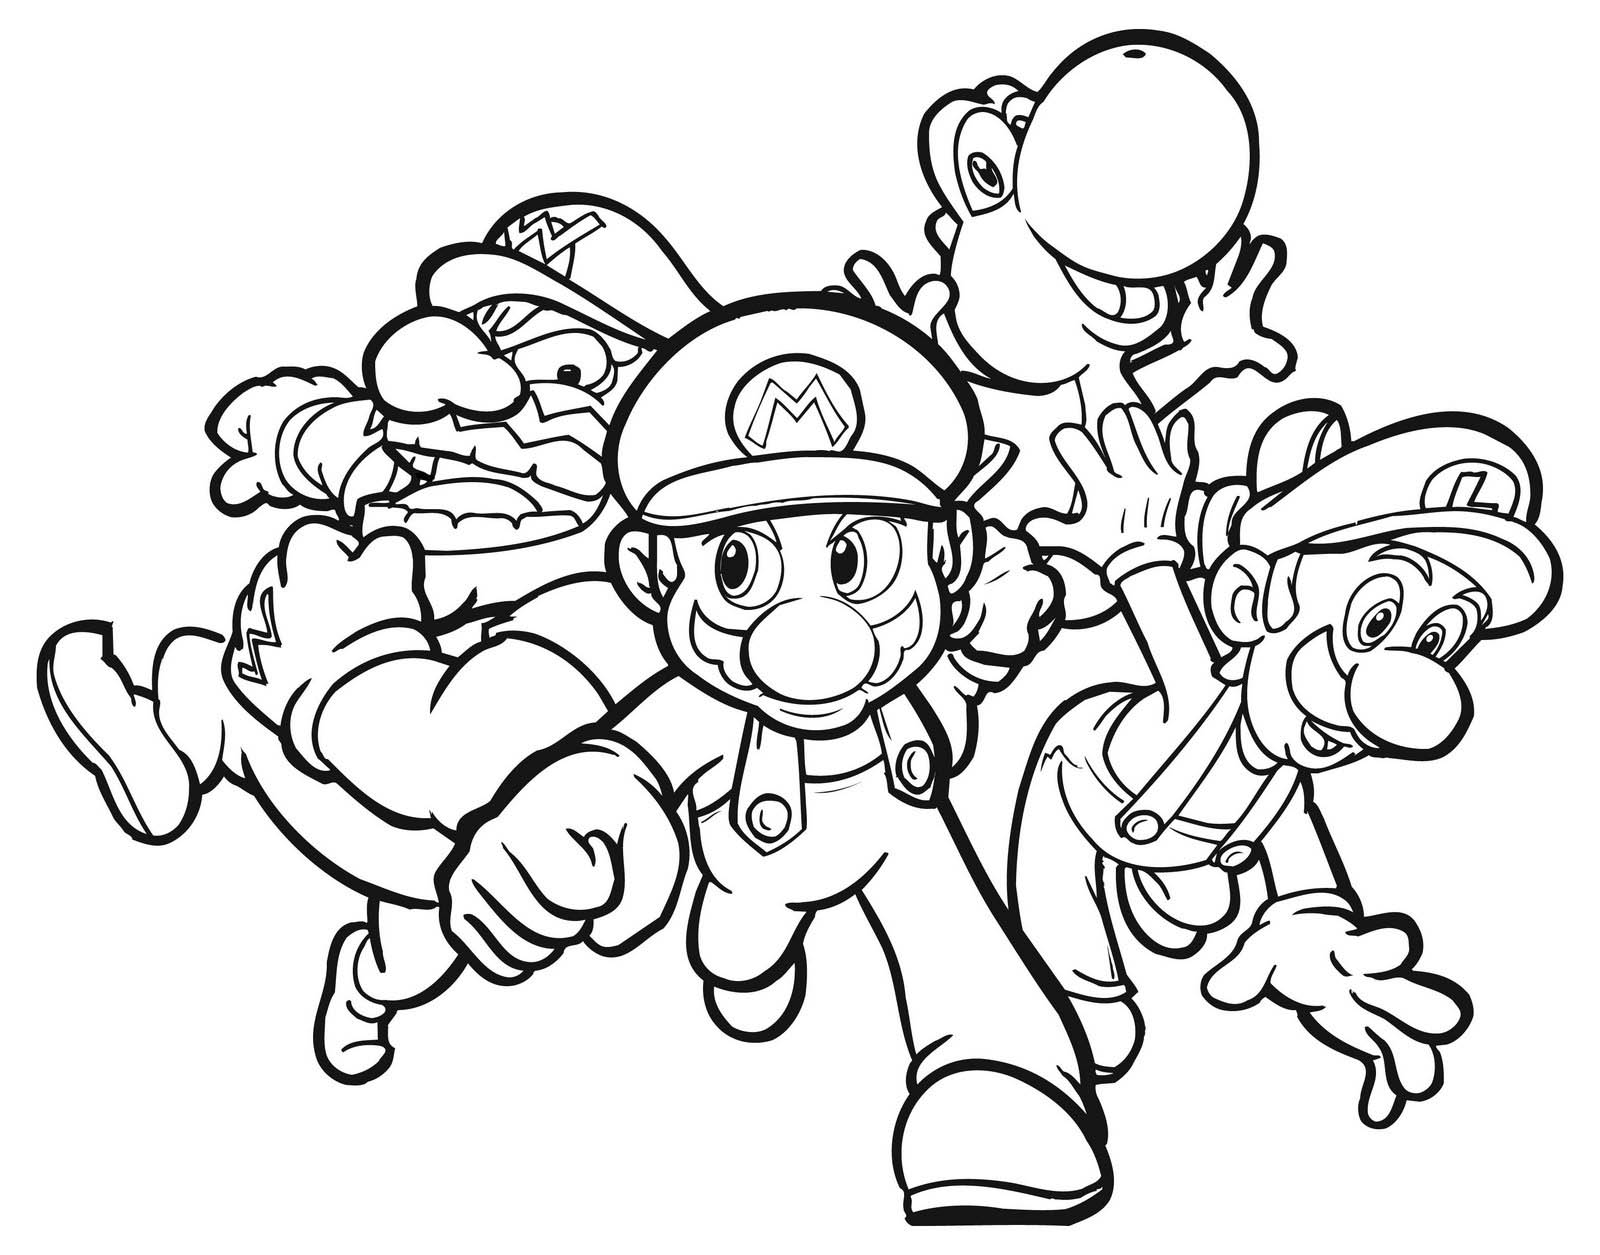 superstar coloring pages - photo#10